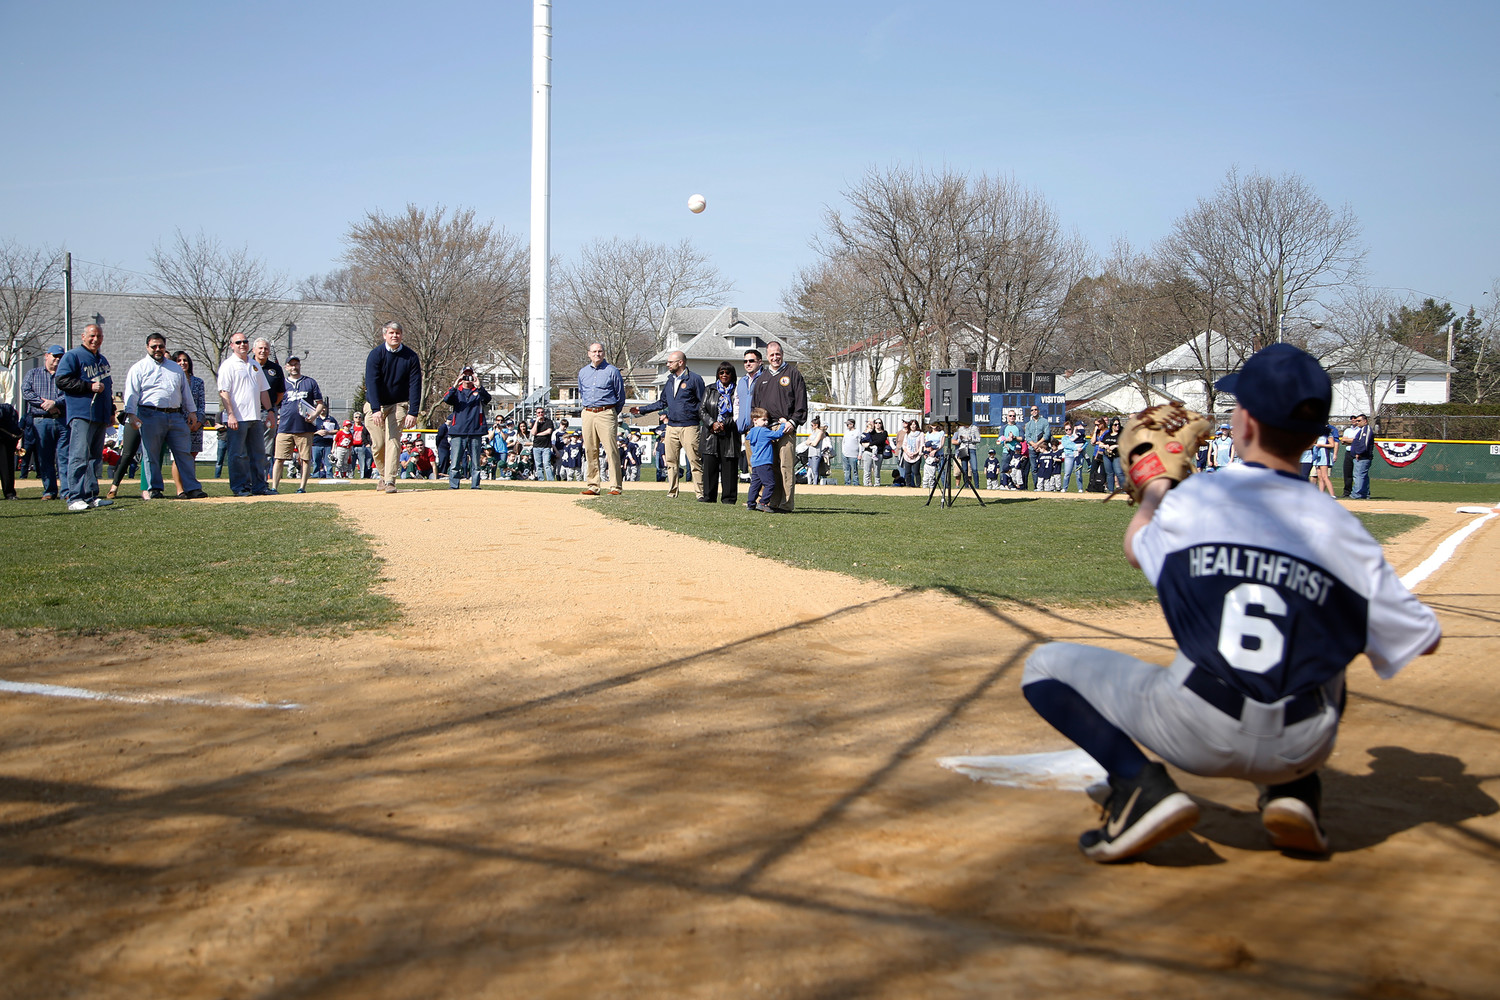 Malverne village Trustee Keith Corbett threw a perfect strike last Saturday at Harris Field to kick off the Malverne Little League season.